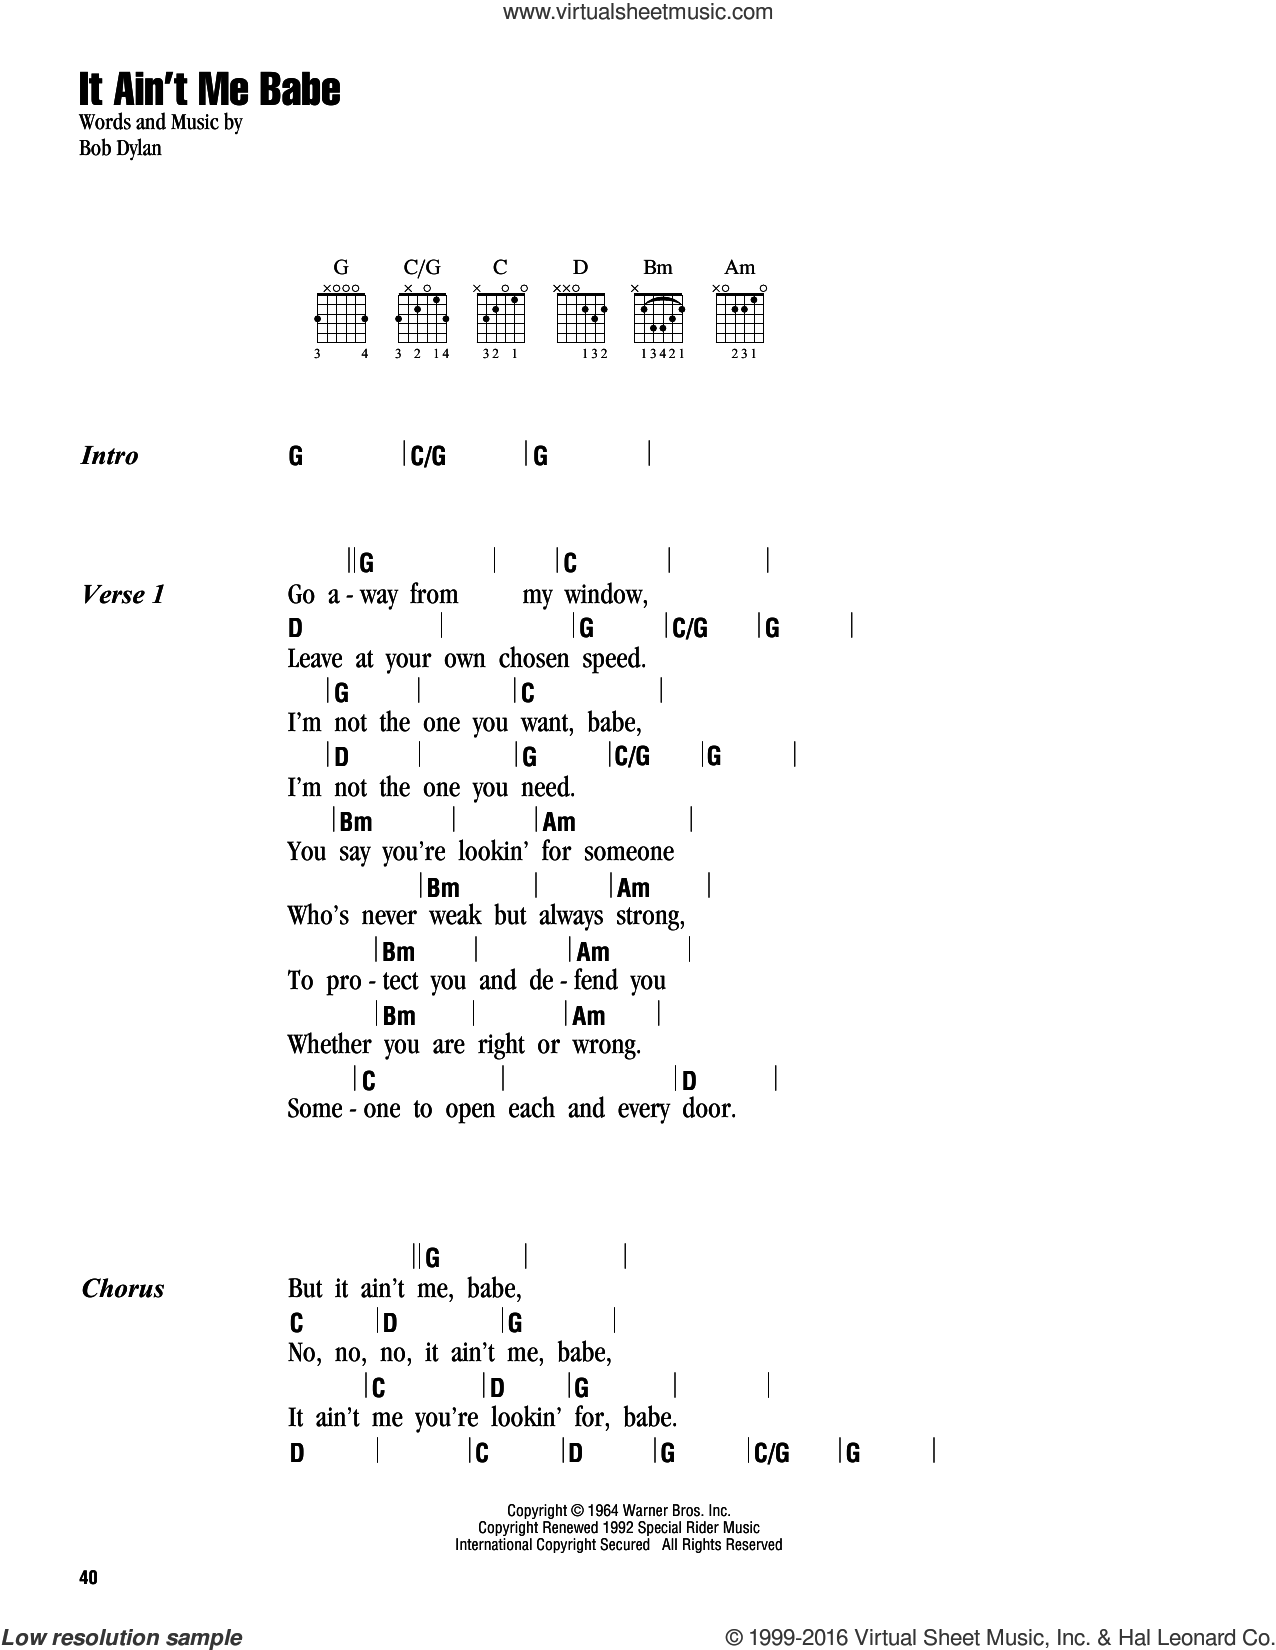 It Ain't Me Babe sheet music for guitar (chords) by Bob Dylan, Johnny Cash and Miscellaneous, intermediate skill level